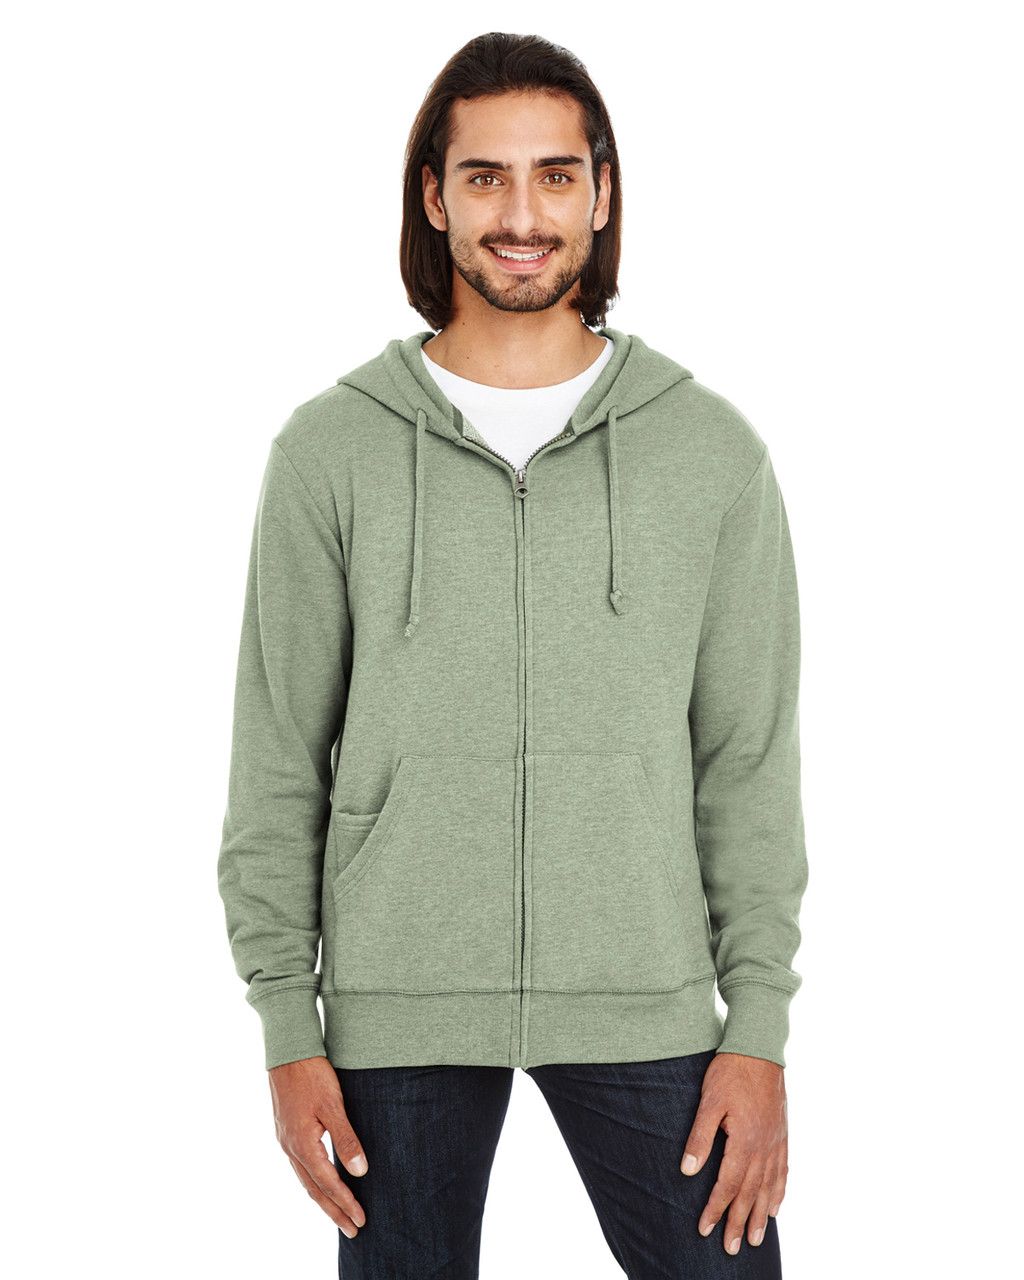 Army Heather - 321Z Threadfast Unisex Triblend French Terry Full-Zip Sweater   Blankclothing.ca